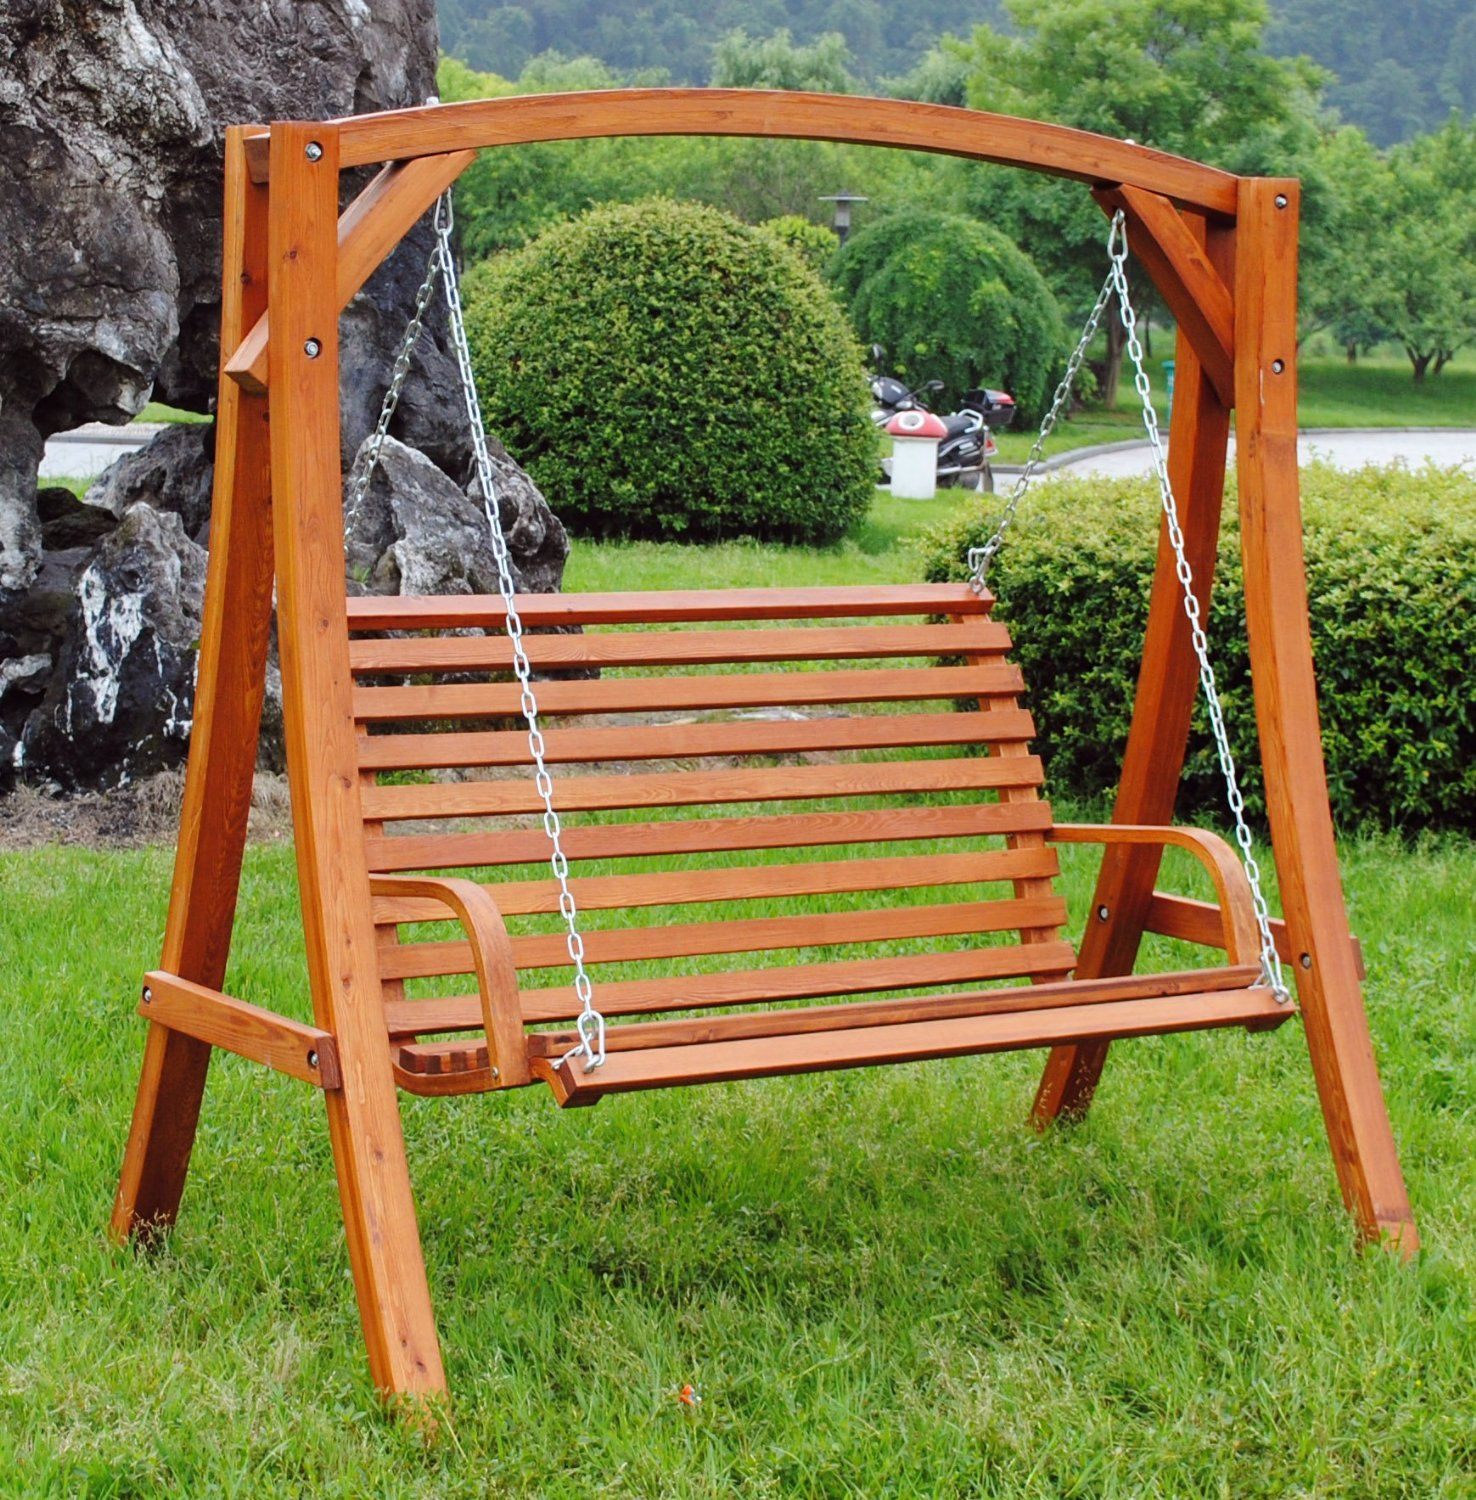 23 SEATER LARCH WOOD WOODEN GARDEN OUTDOOR SWING SEAT